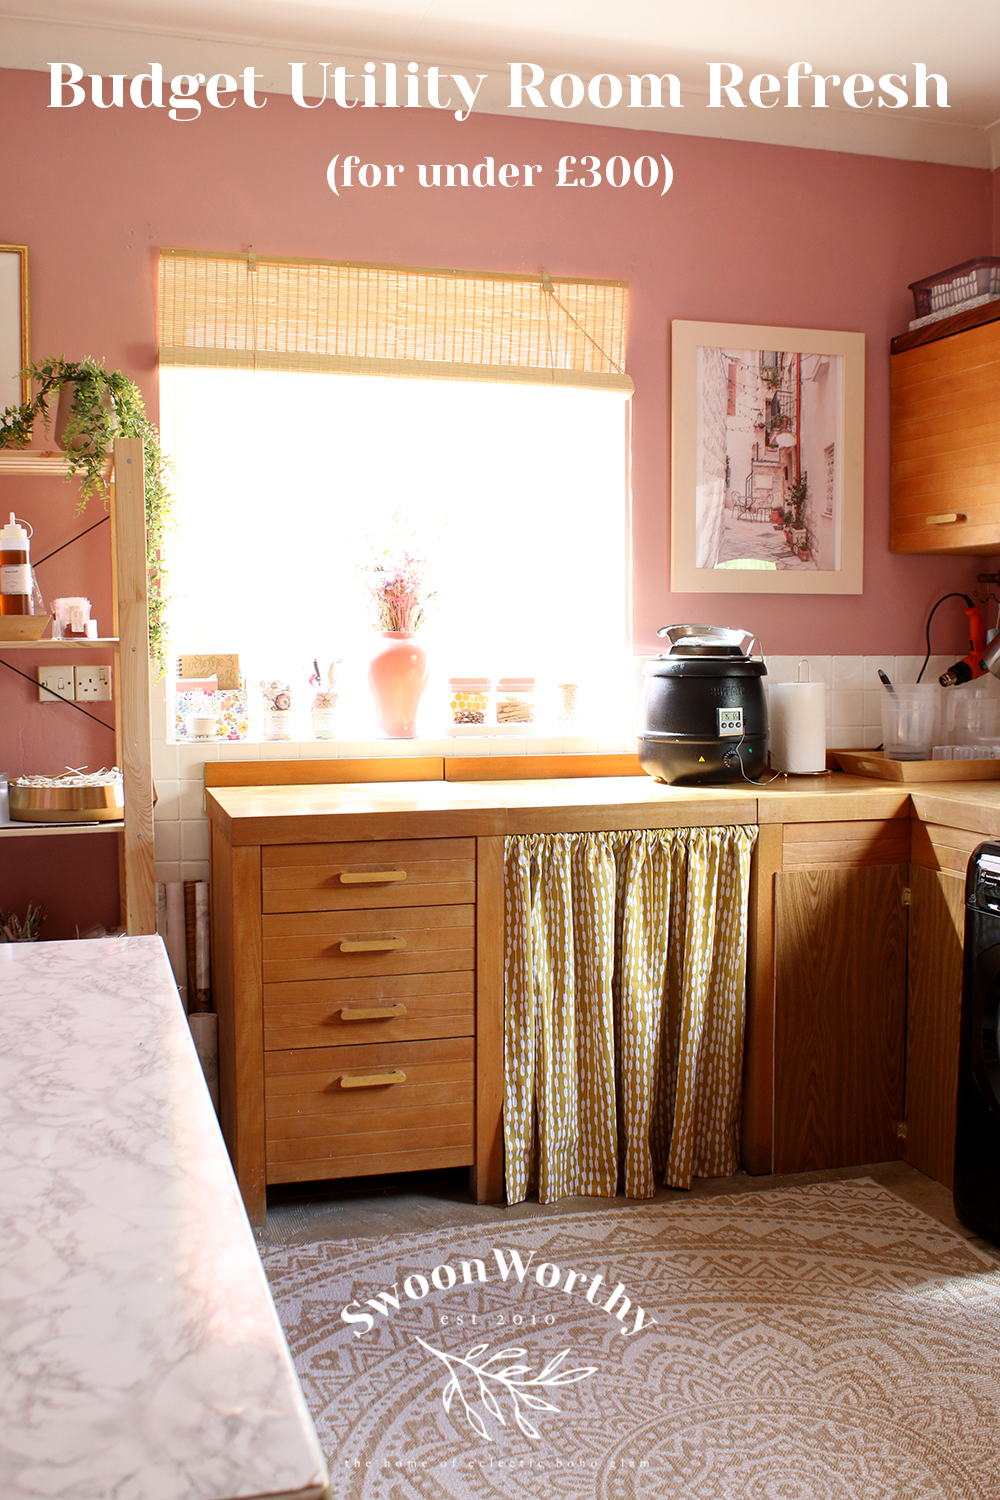 Budget Utility Room Refresh for under £300